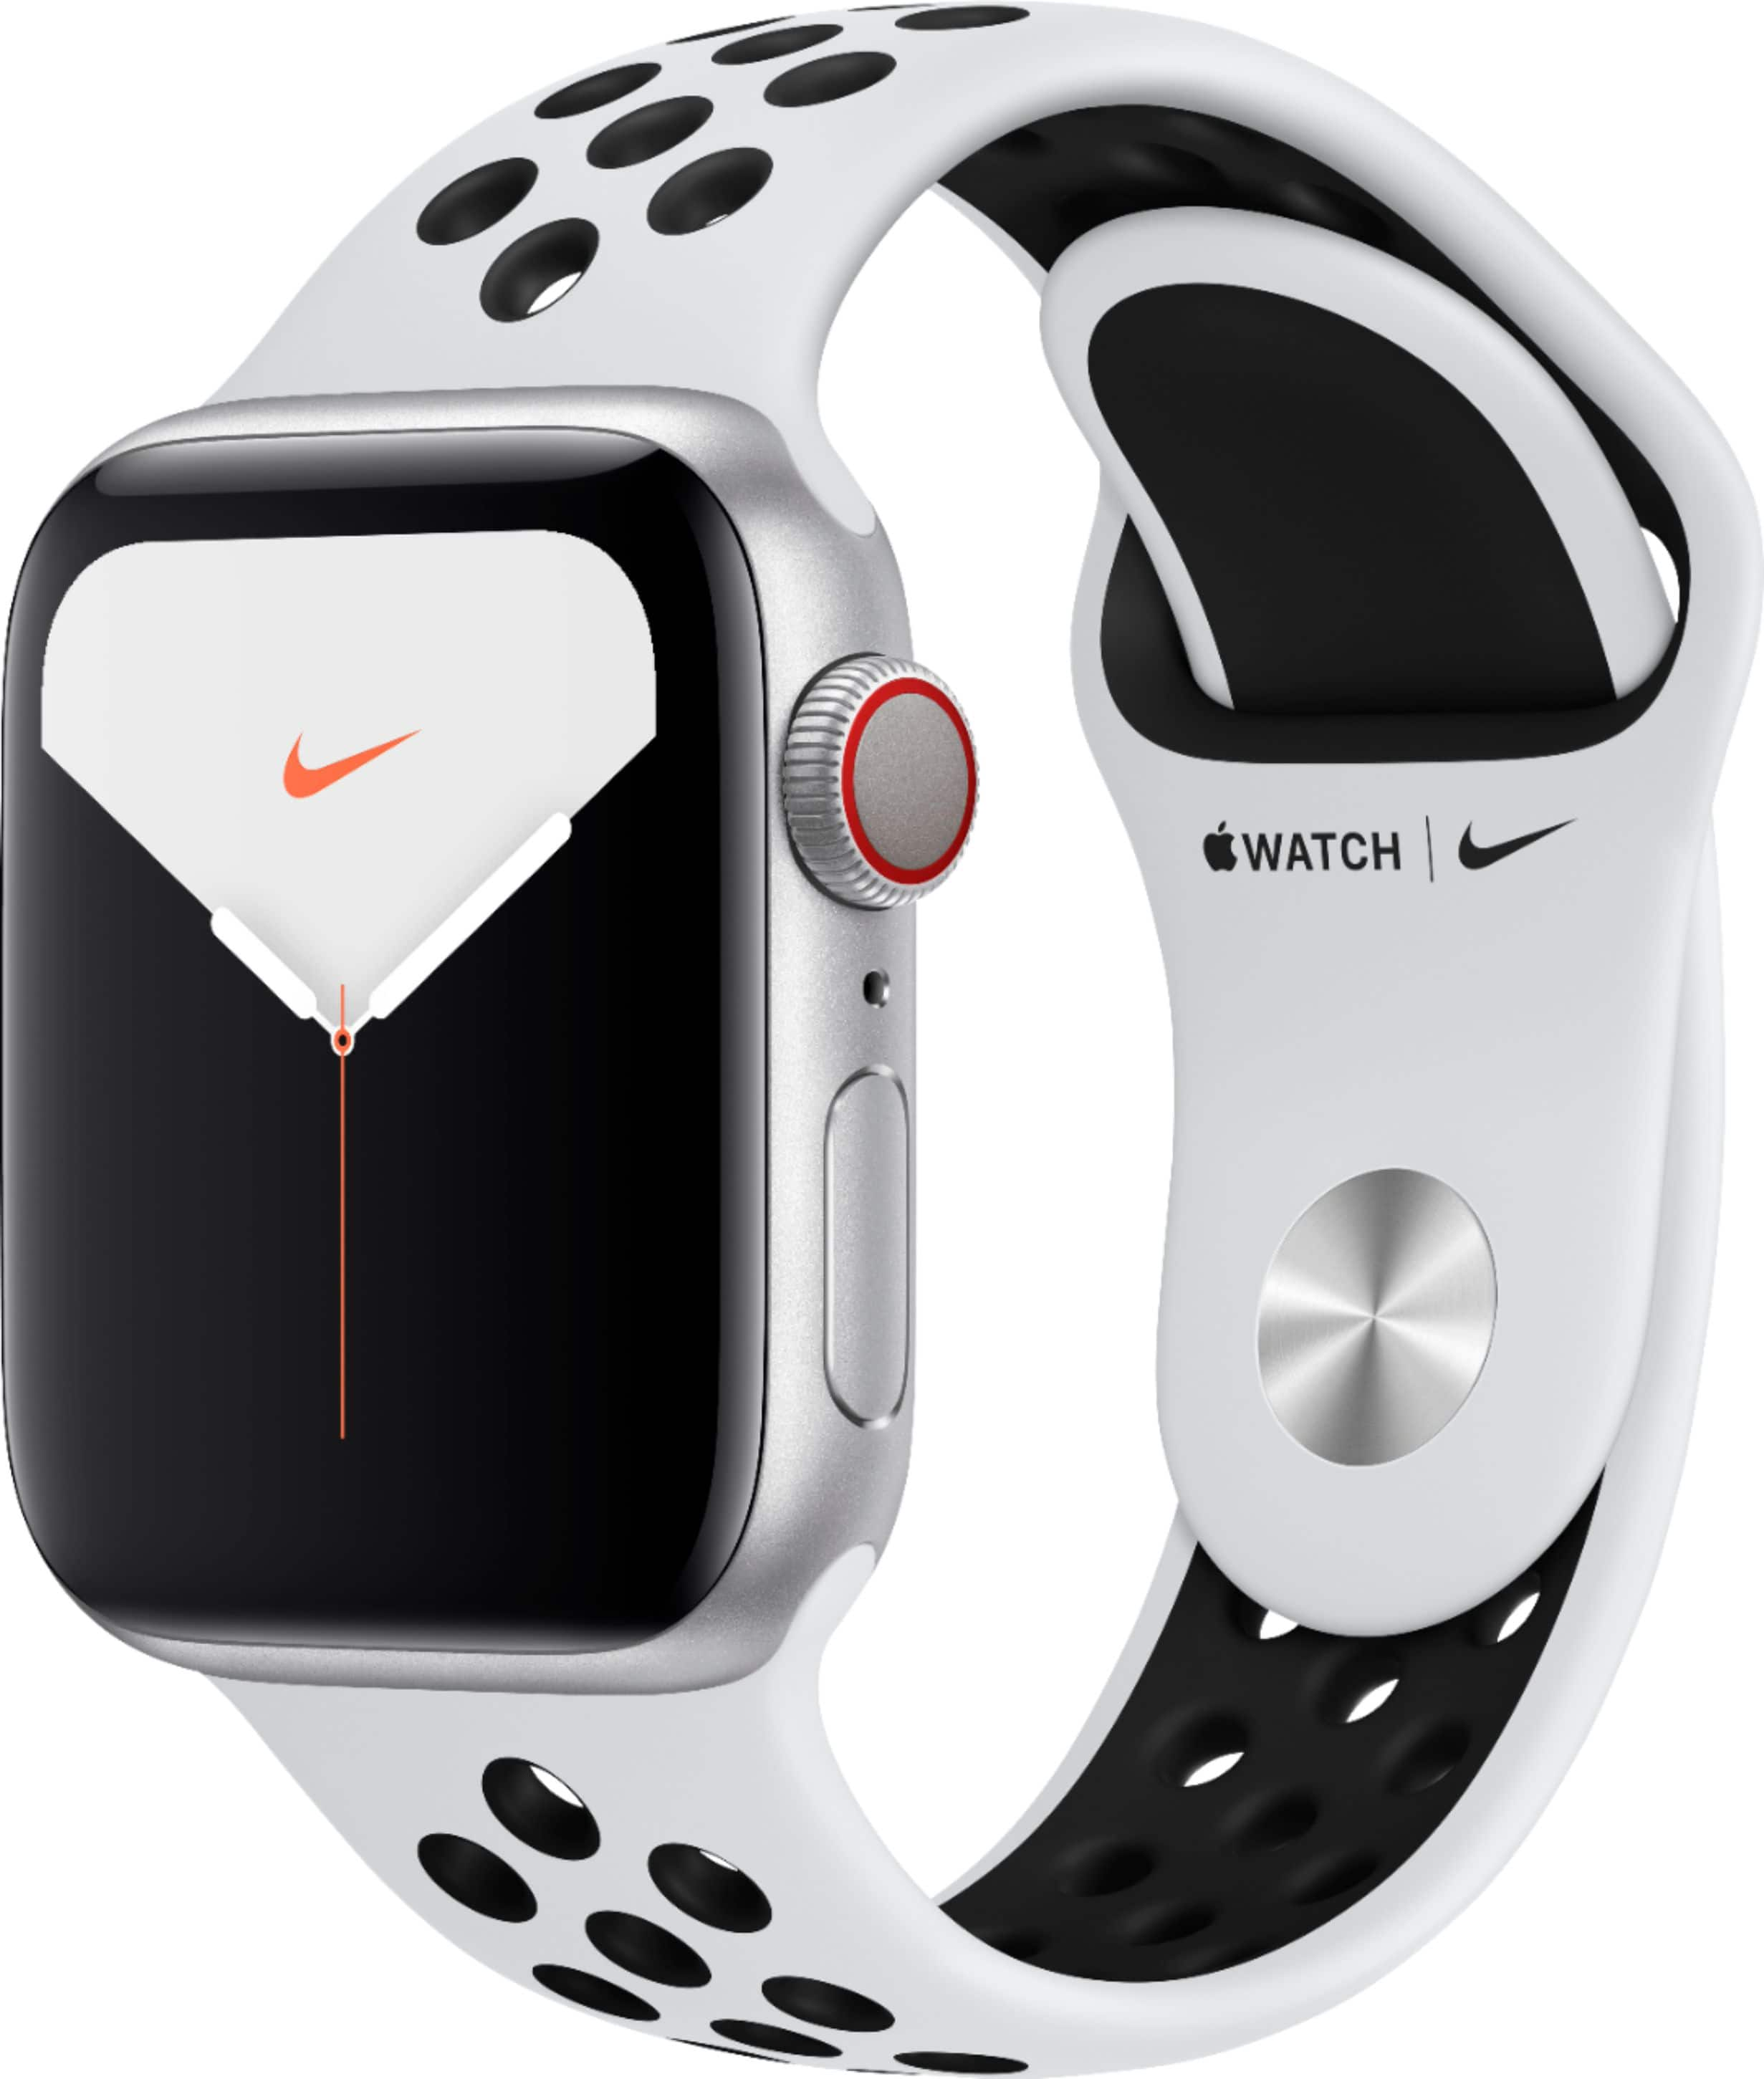 Apple Watch Nike Series 5 (GPS + Cellular) 40mm Silver Aluminum Case with Pure Platinum/Black Nike Sport Band Silver Aluminum MX372LL/A - Best Buy $319.99